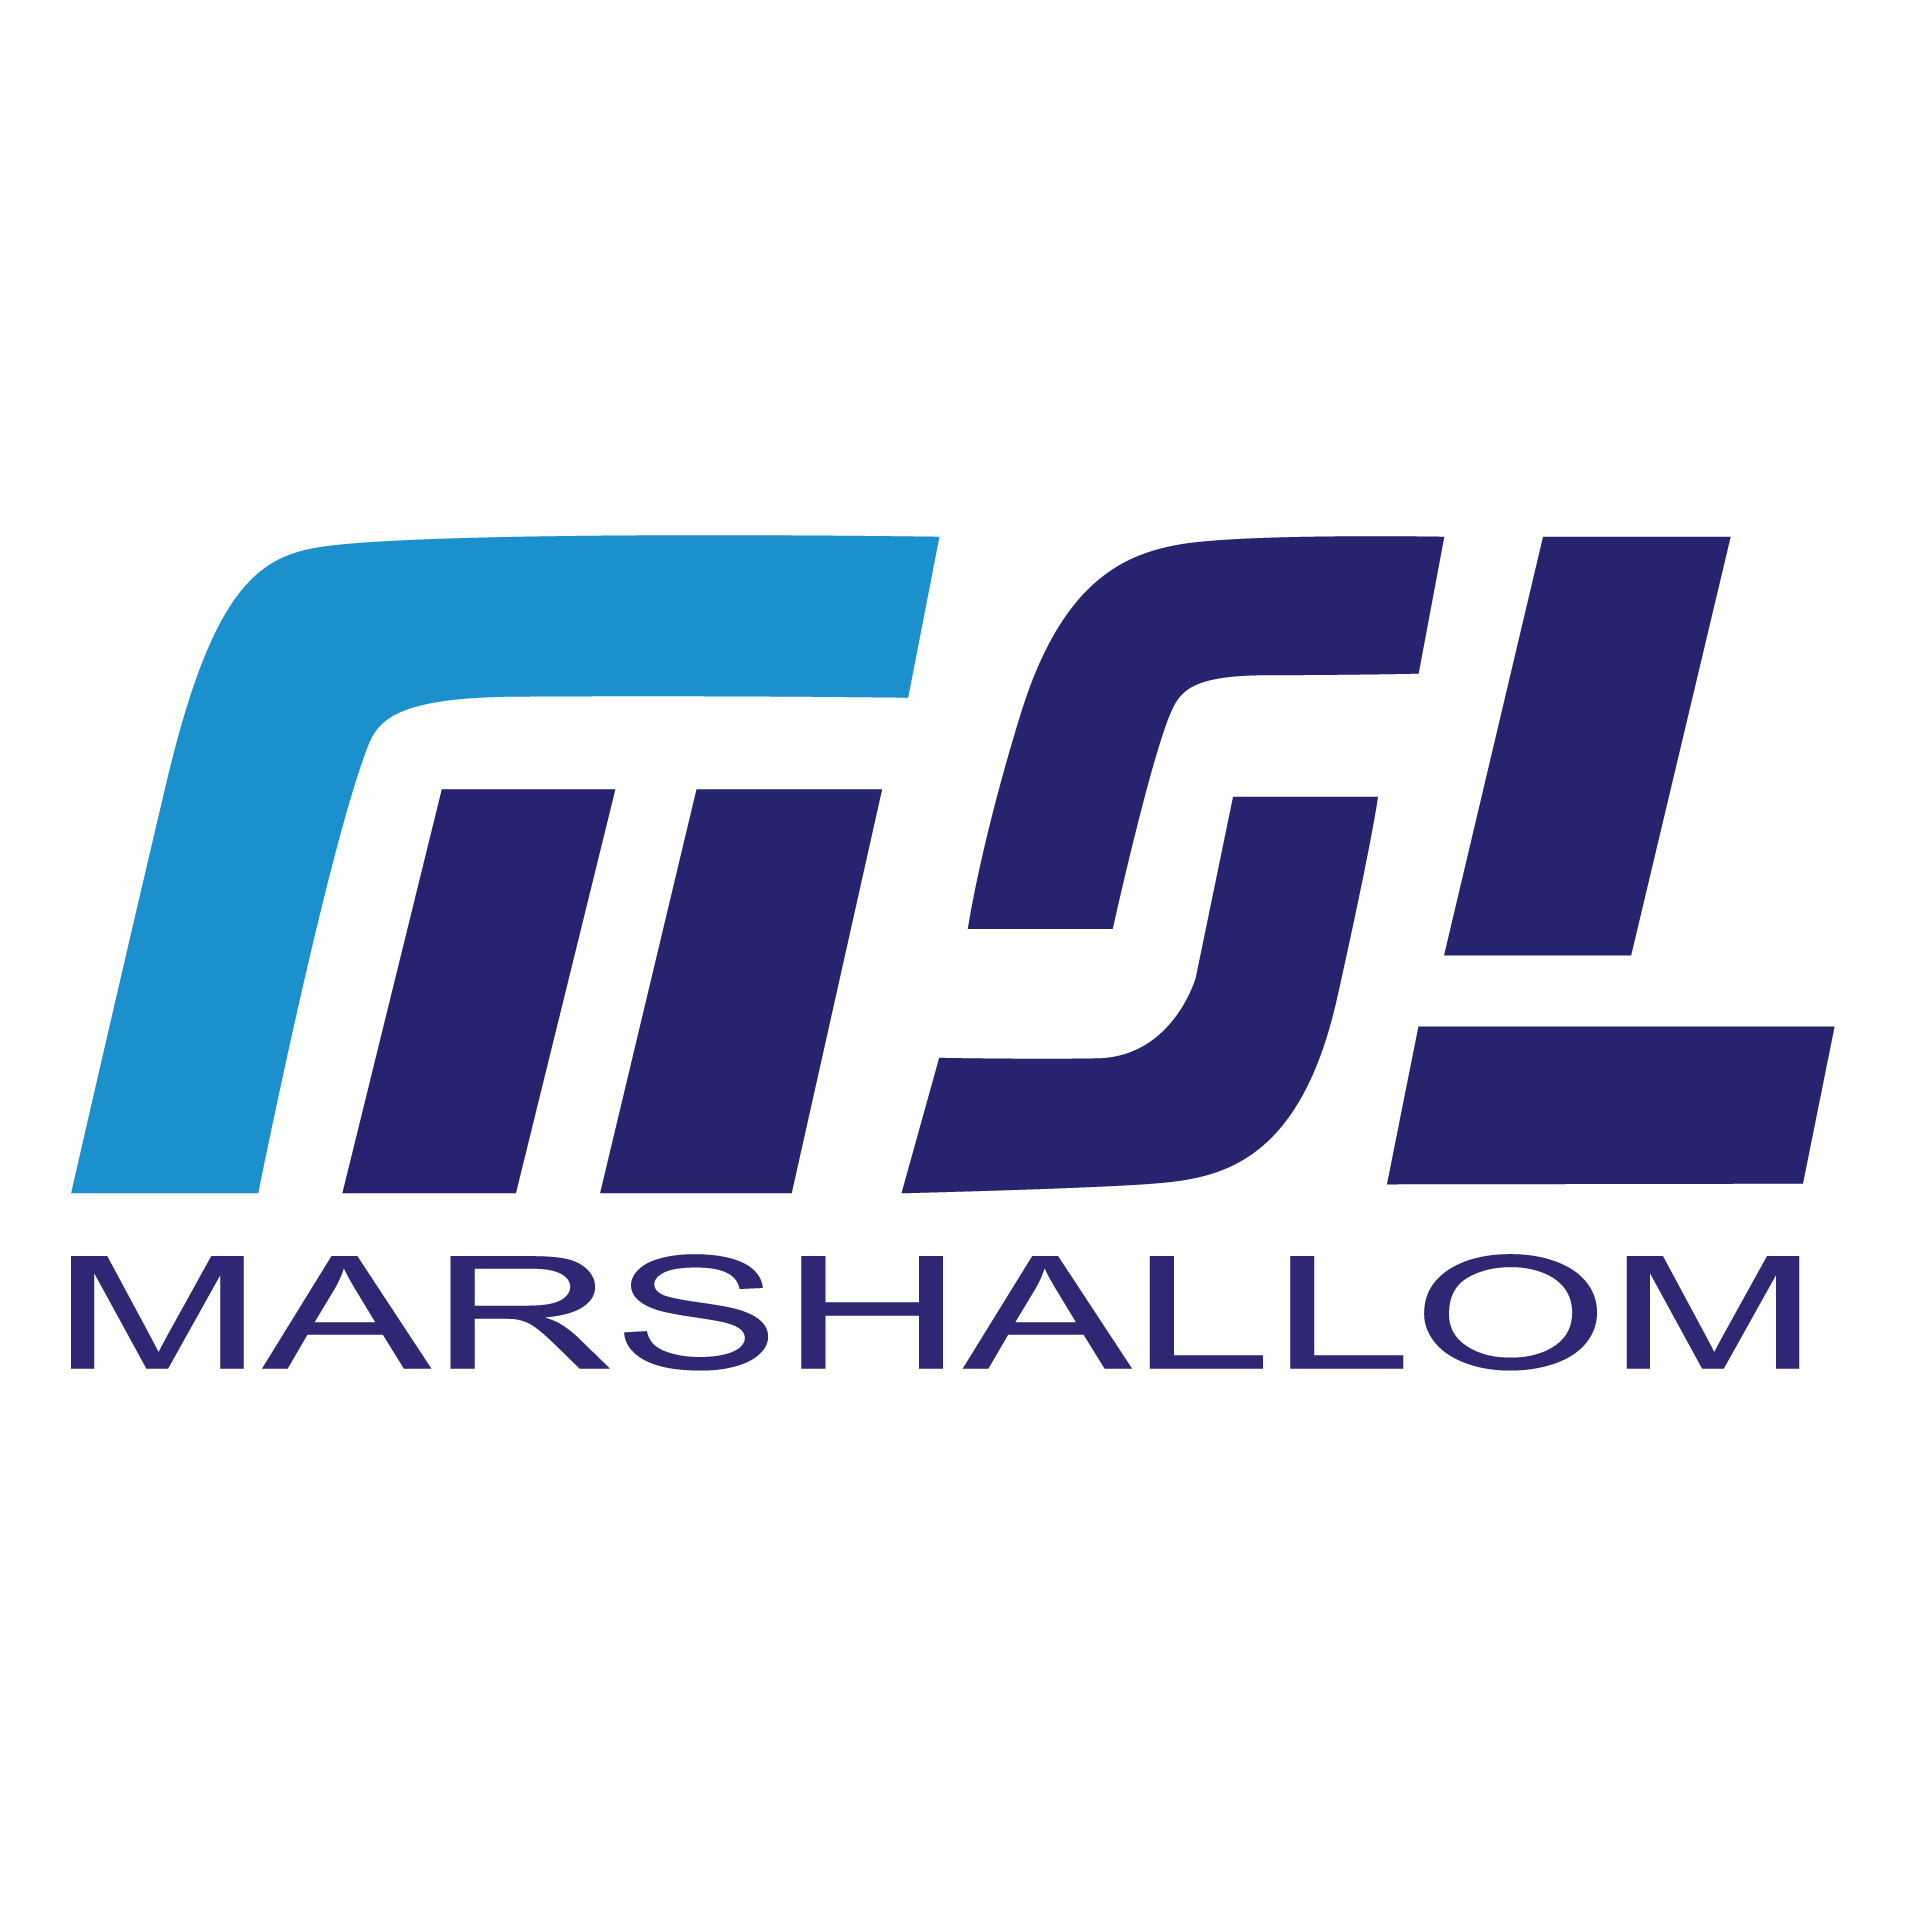 Marshallom  Metal  Manufacture  (Huizhou) CO., LTD